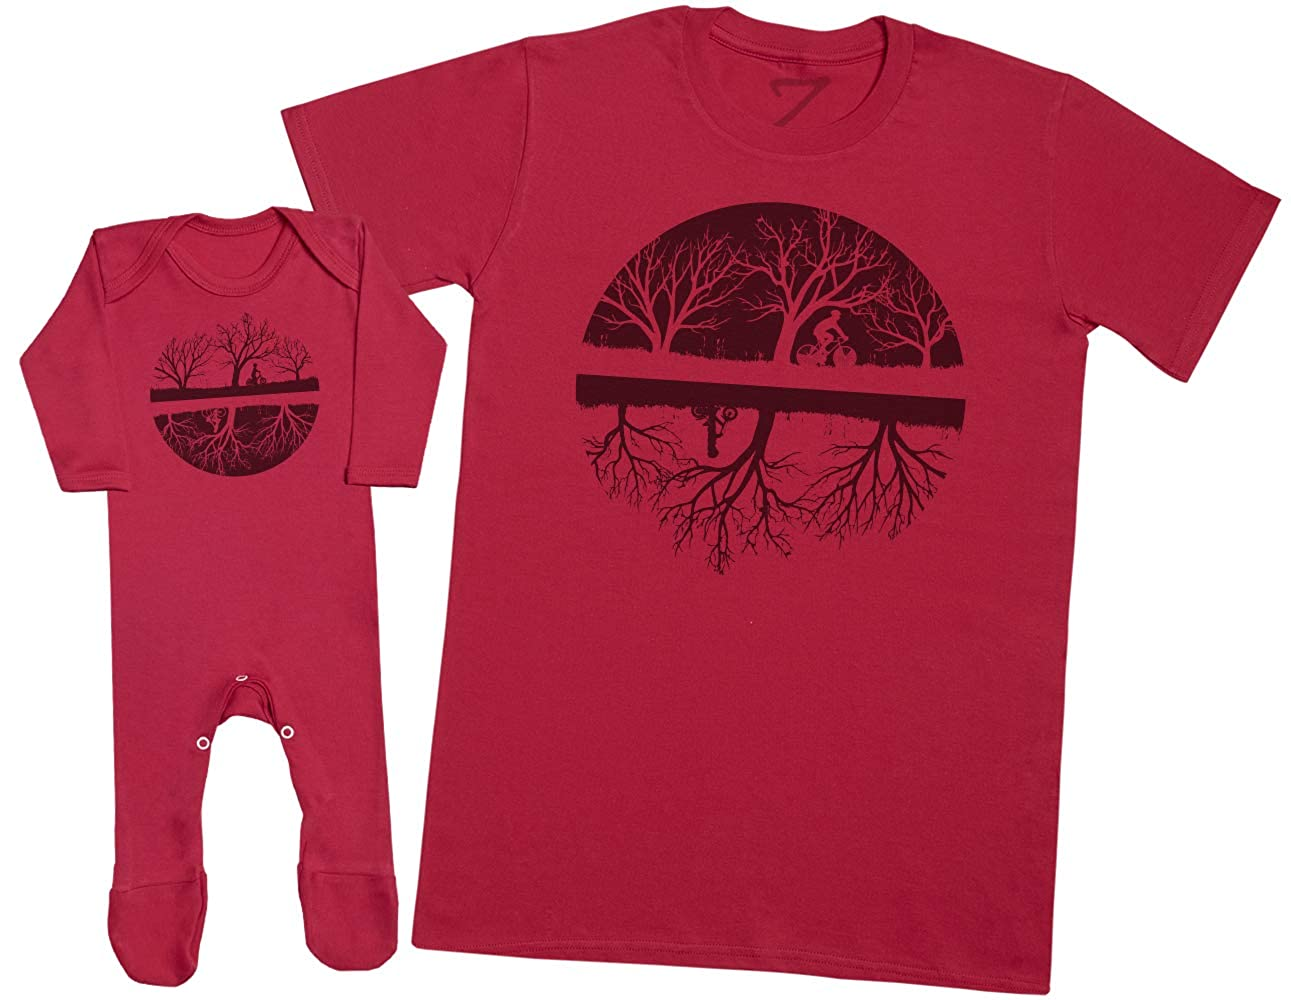 Upside Down Bikers Mens T Shirt /& Baby Romper Matching Father Baby Gift Set